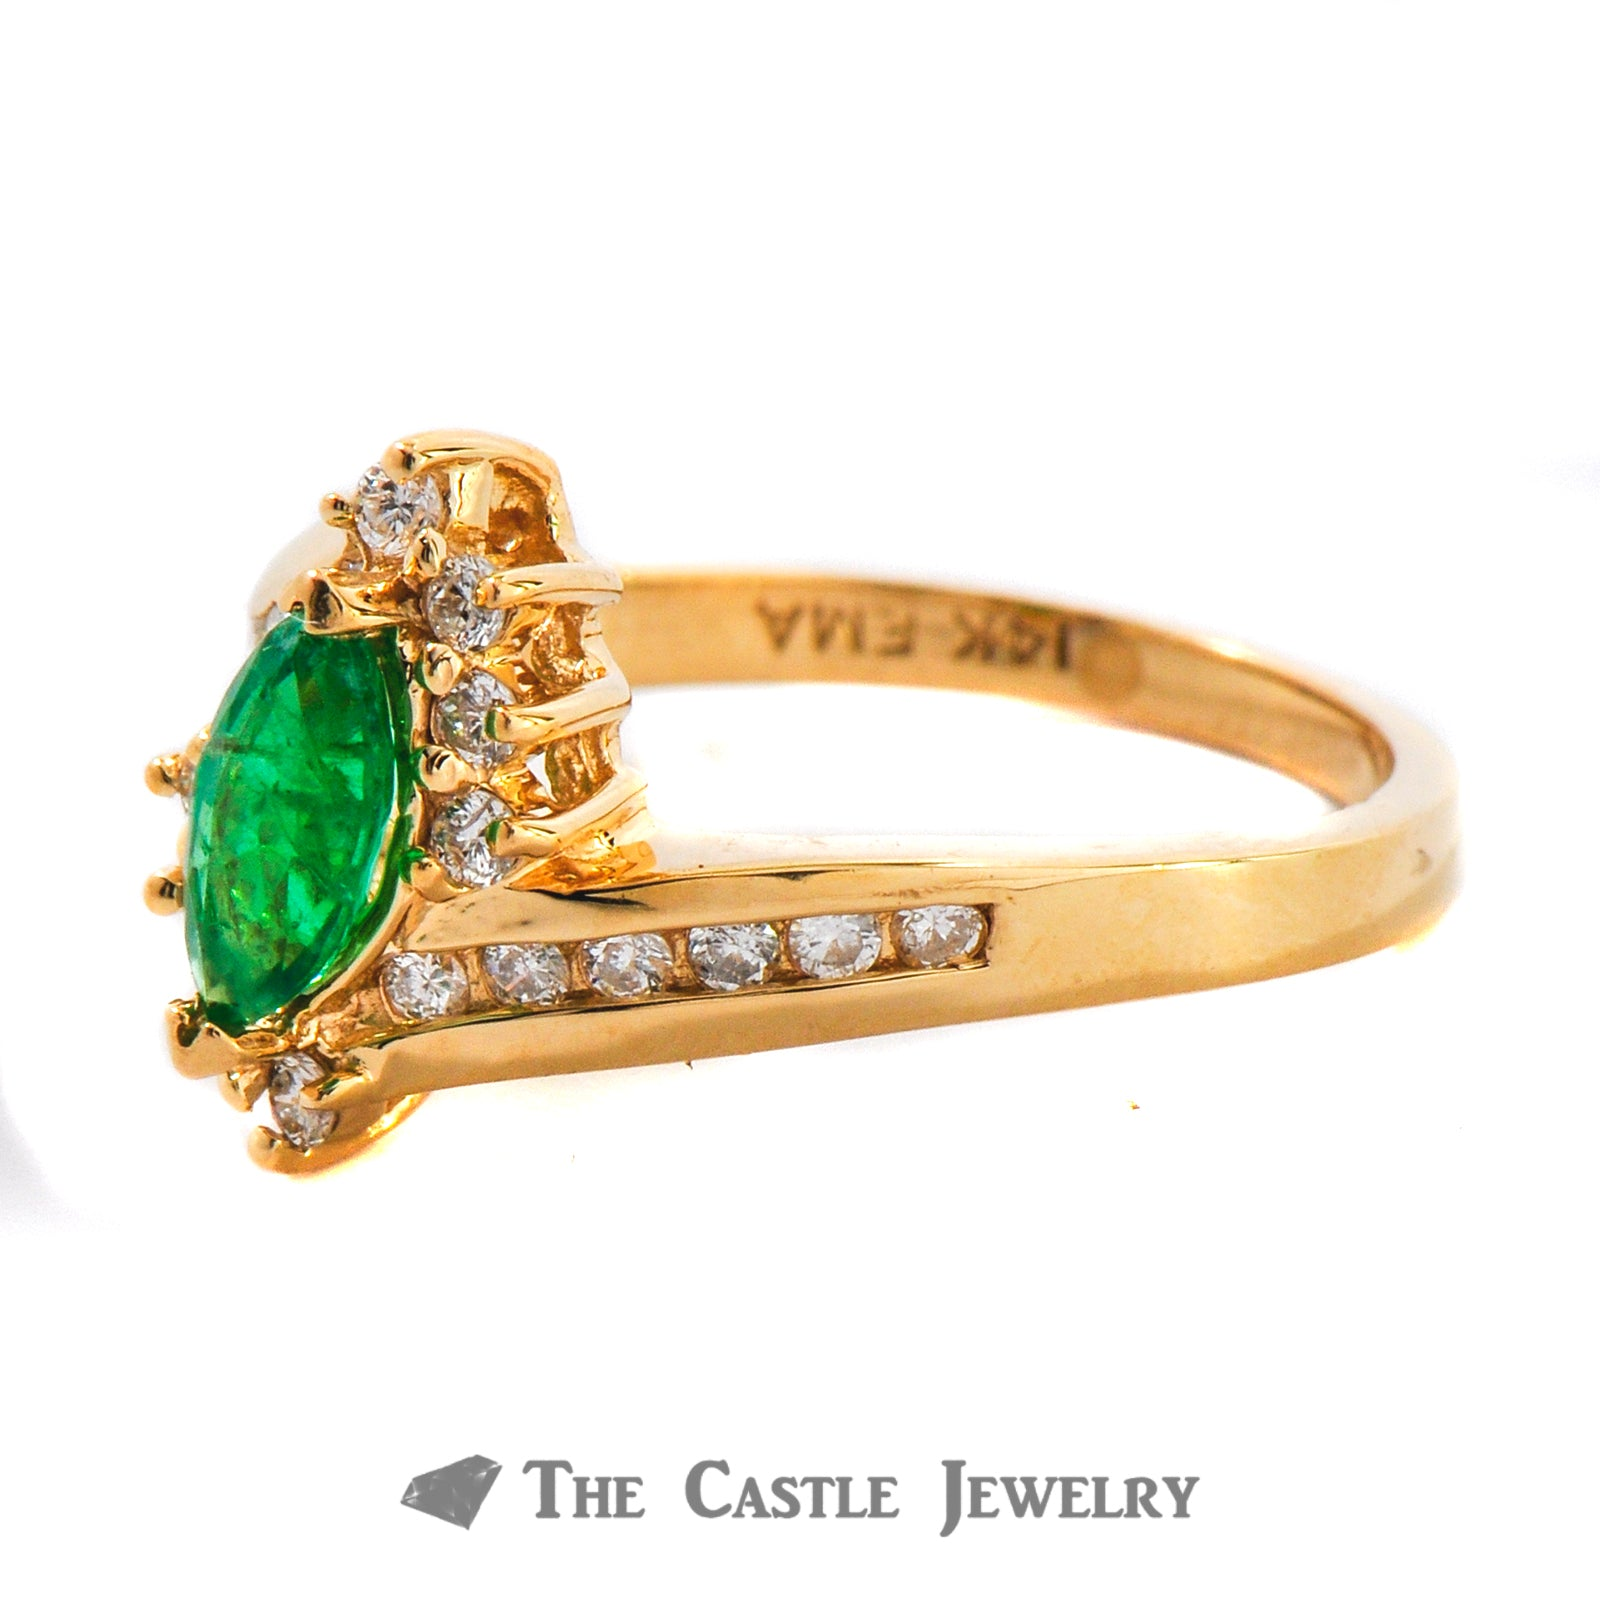 Genuine Marquise Cut Emerald And Diamond Ring In 14K Yellow Gold-1